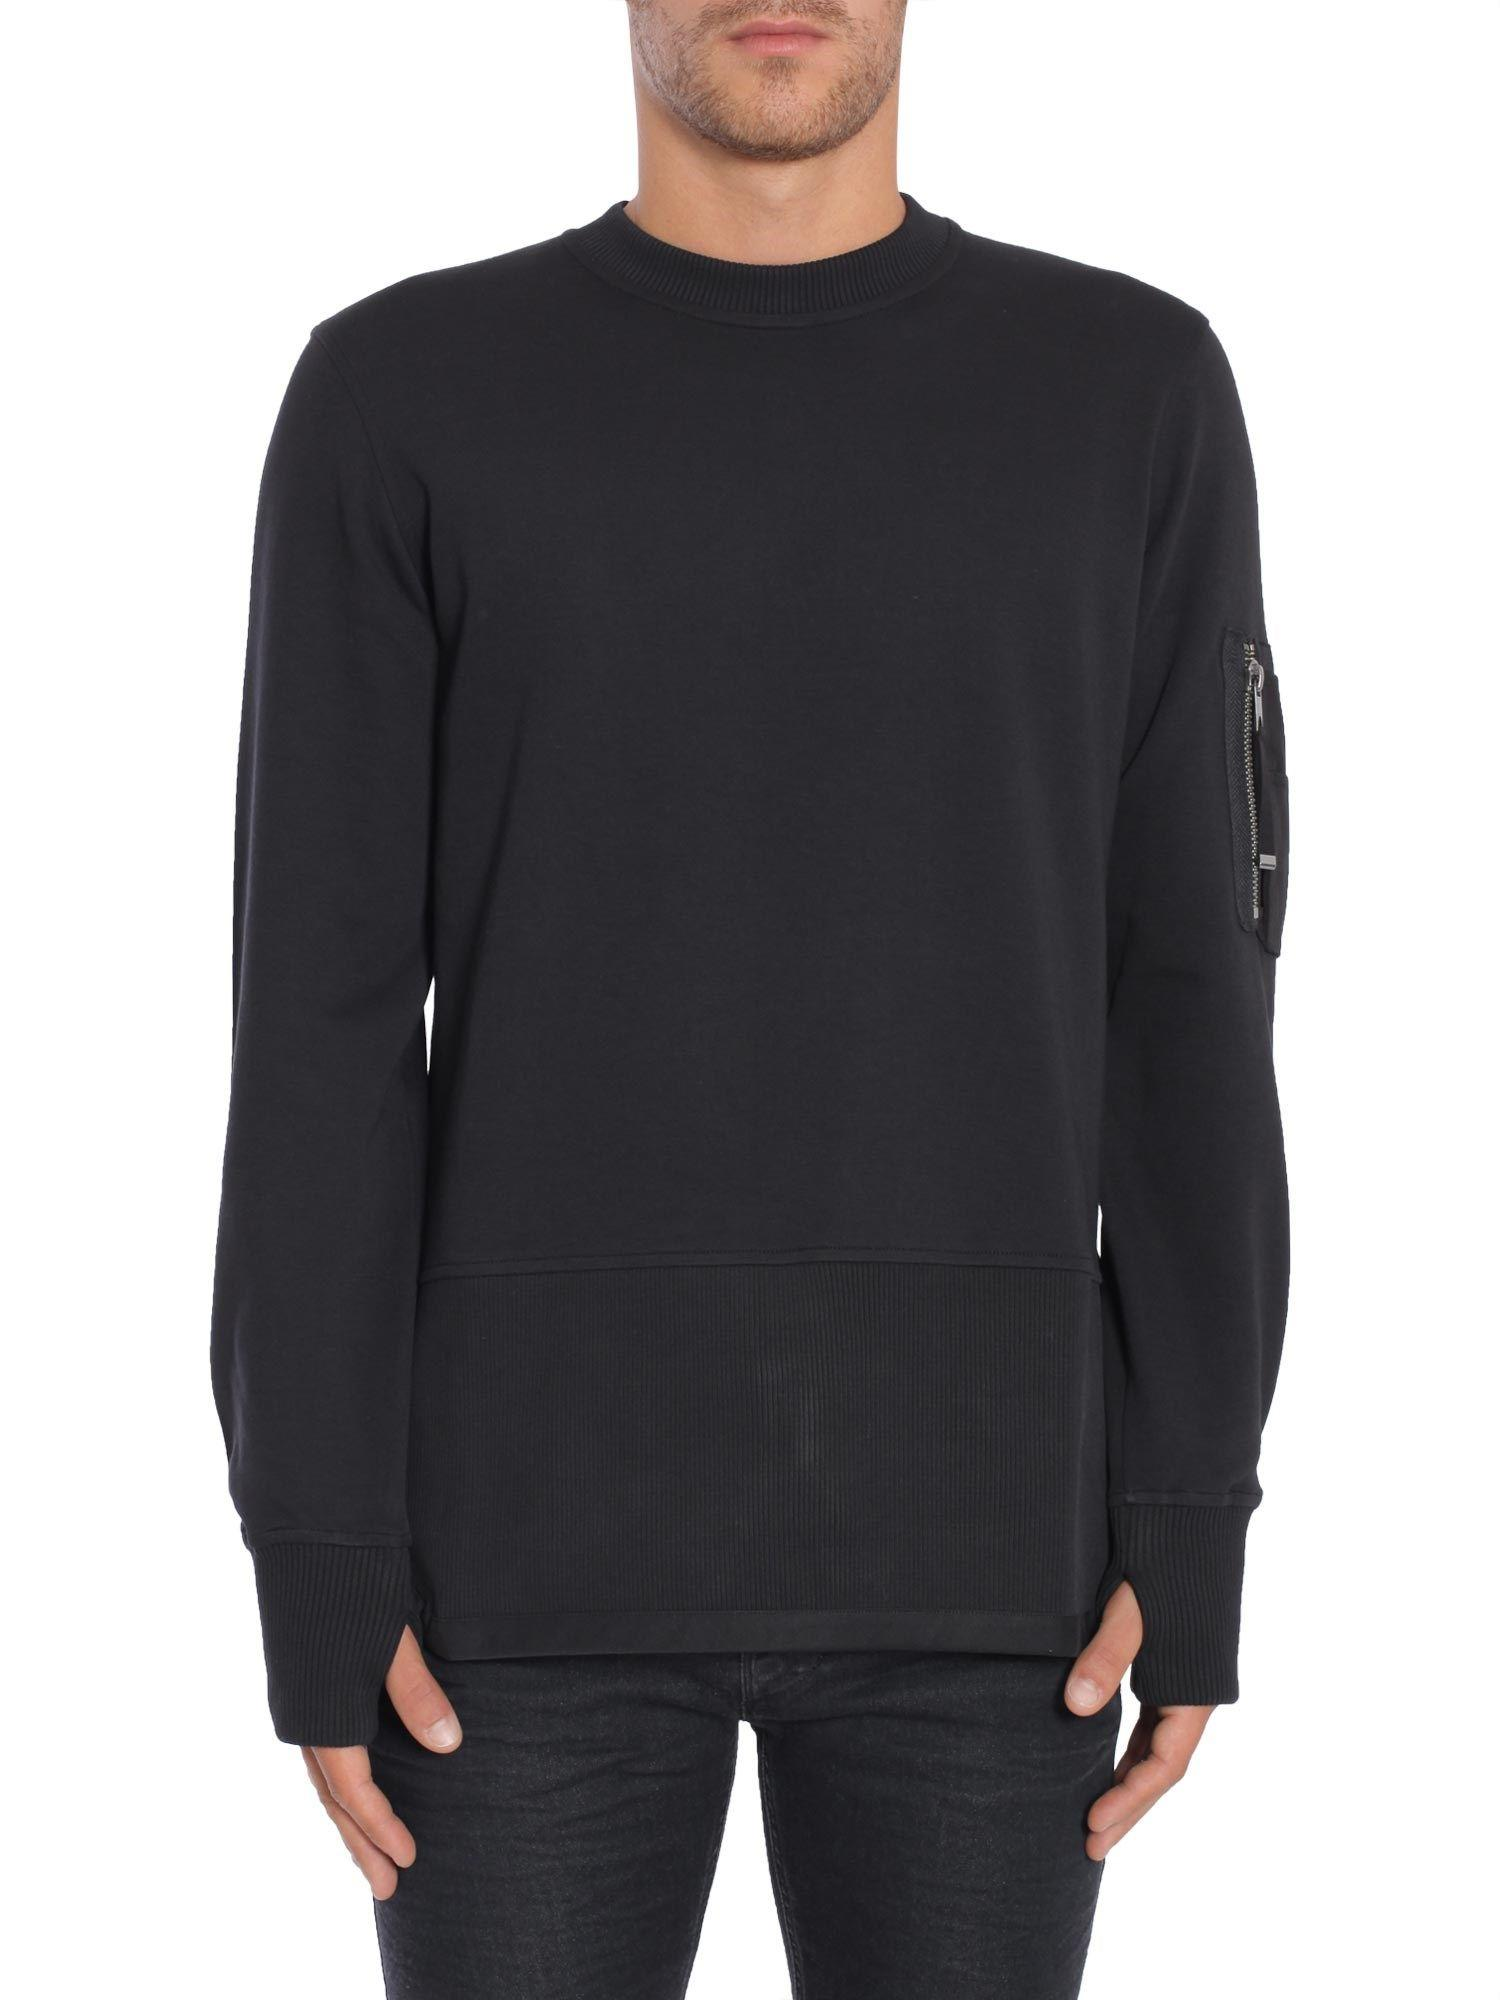 Diesel Black Gold Storney-Lf Sweatshirt In Nero